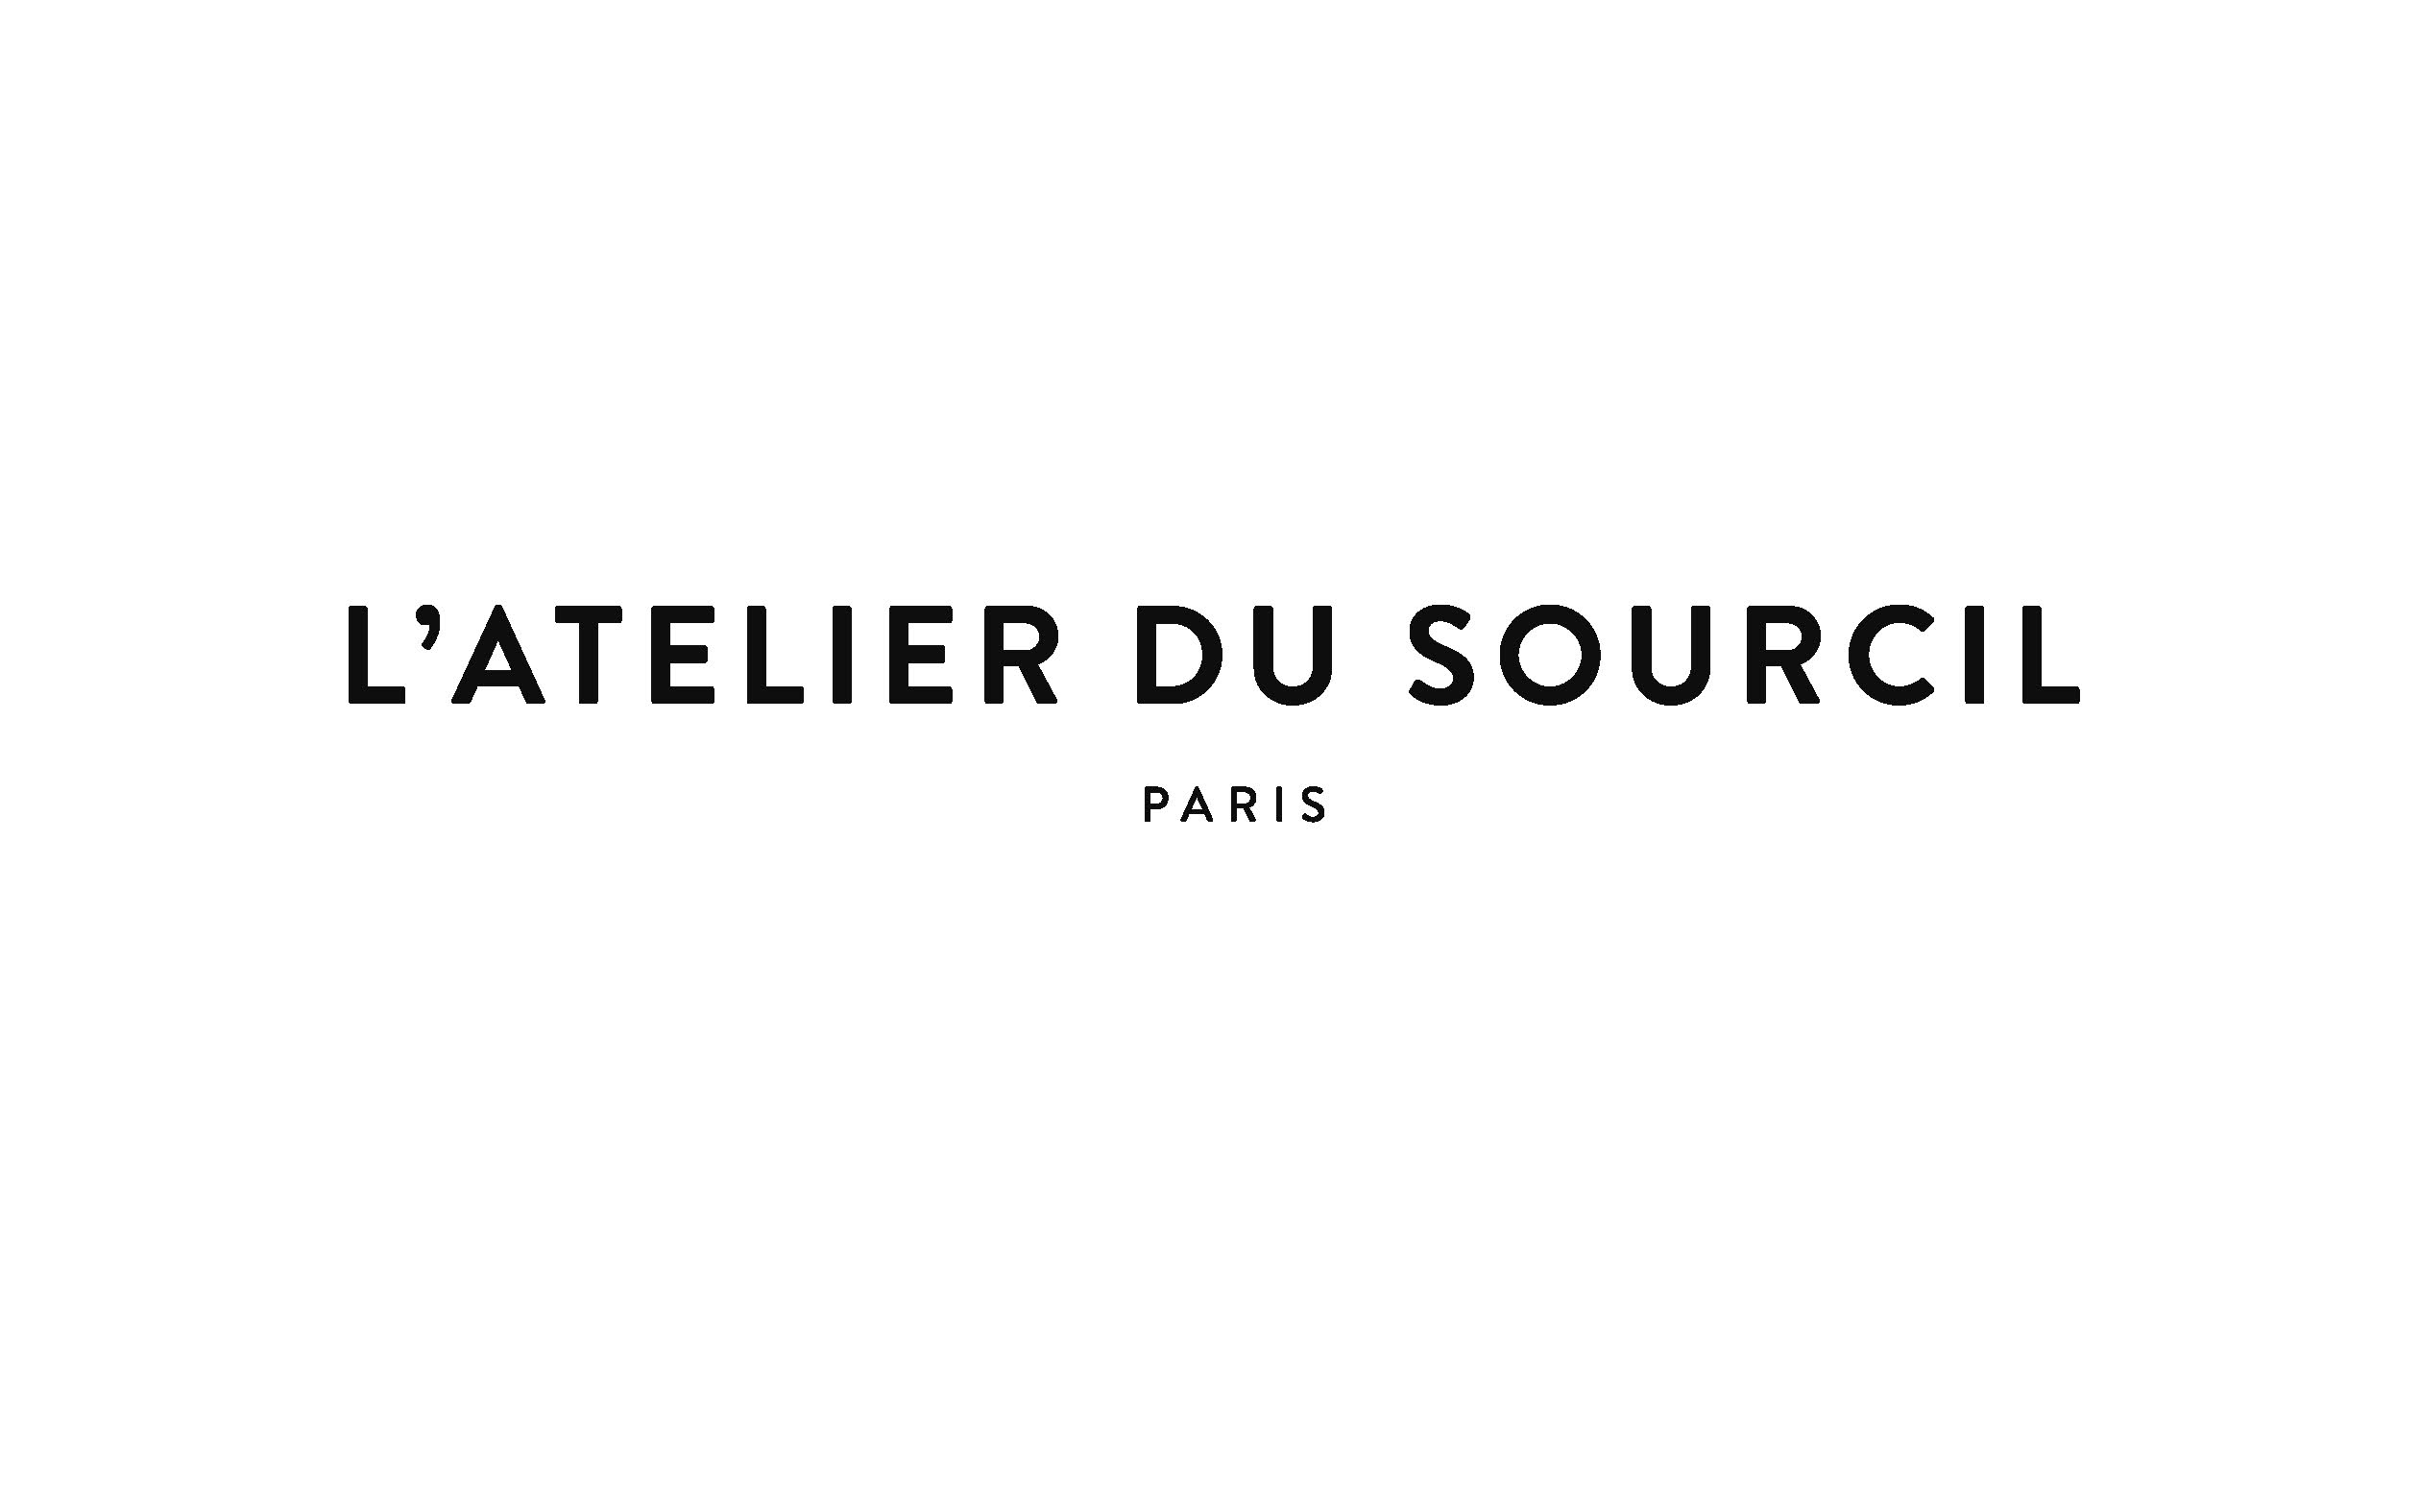 L'Atelier du Sourcil - Paris 11